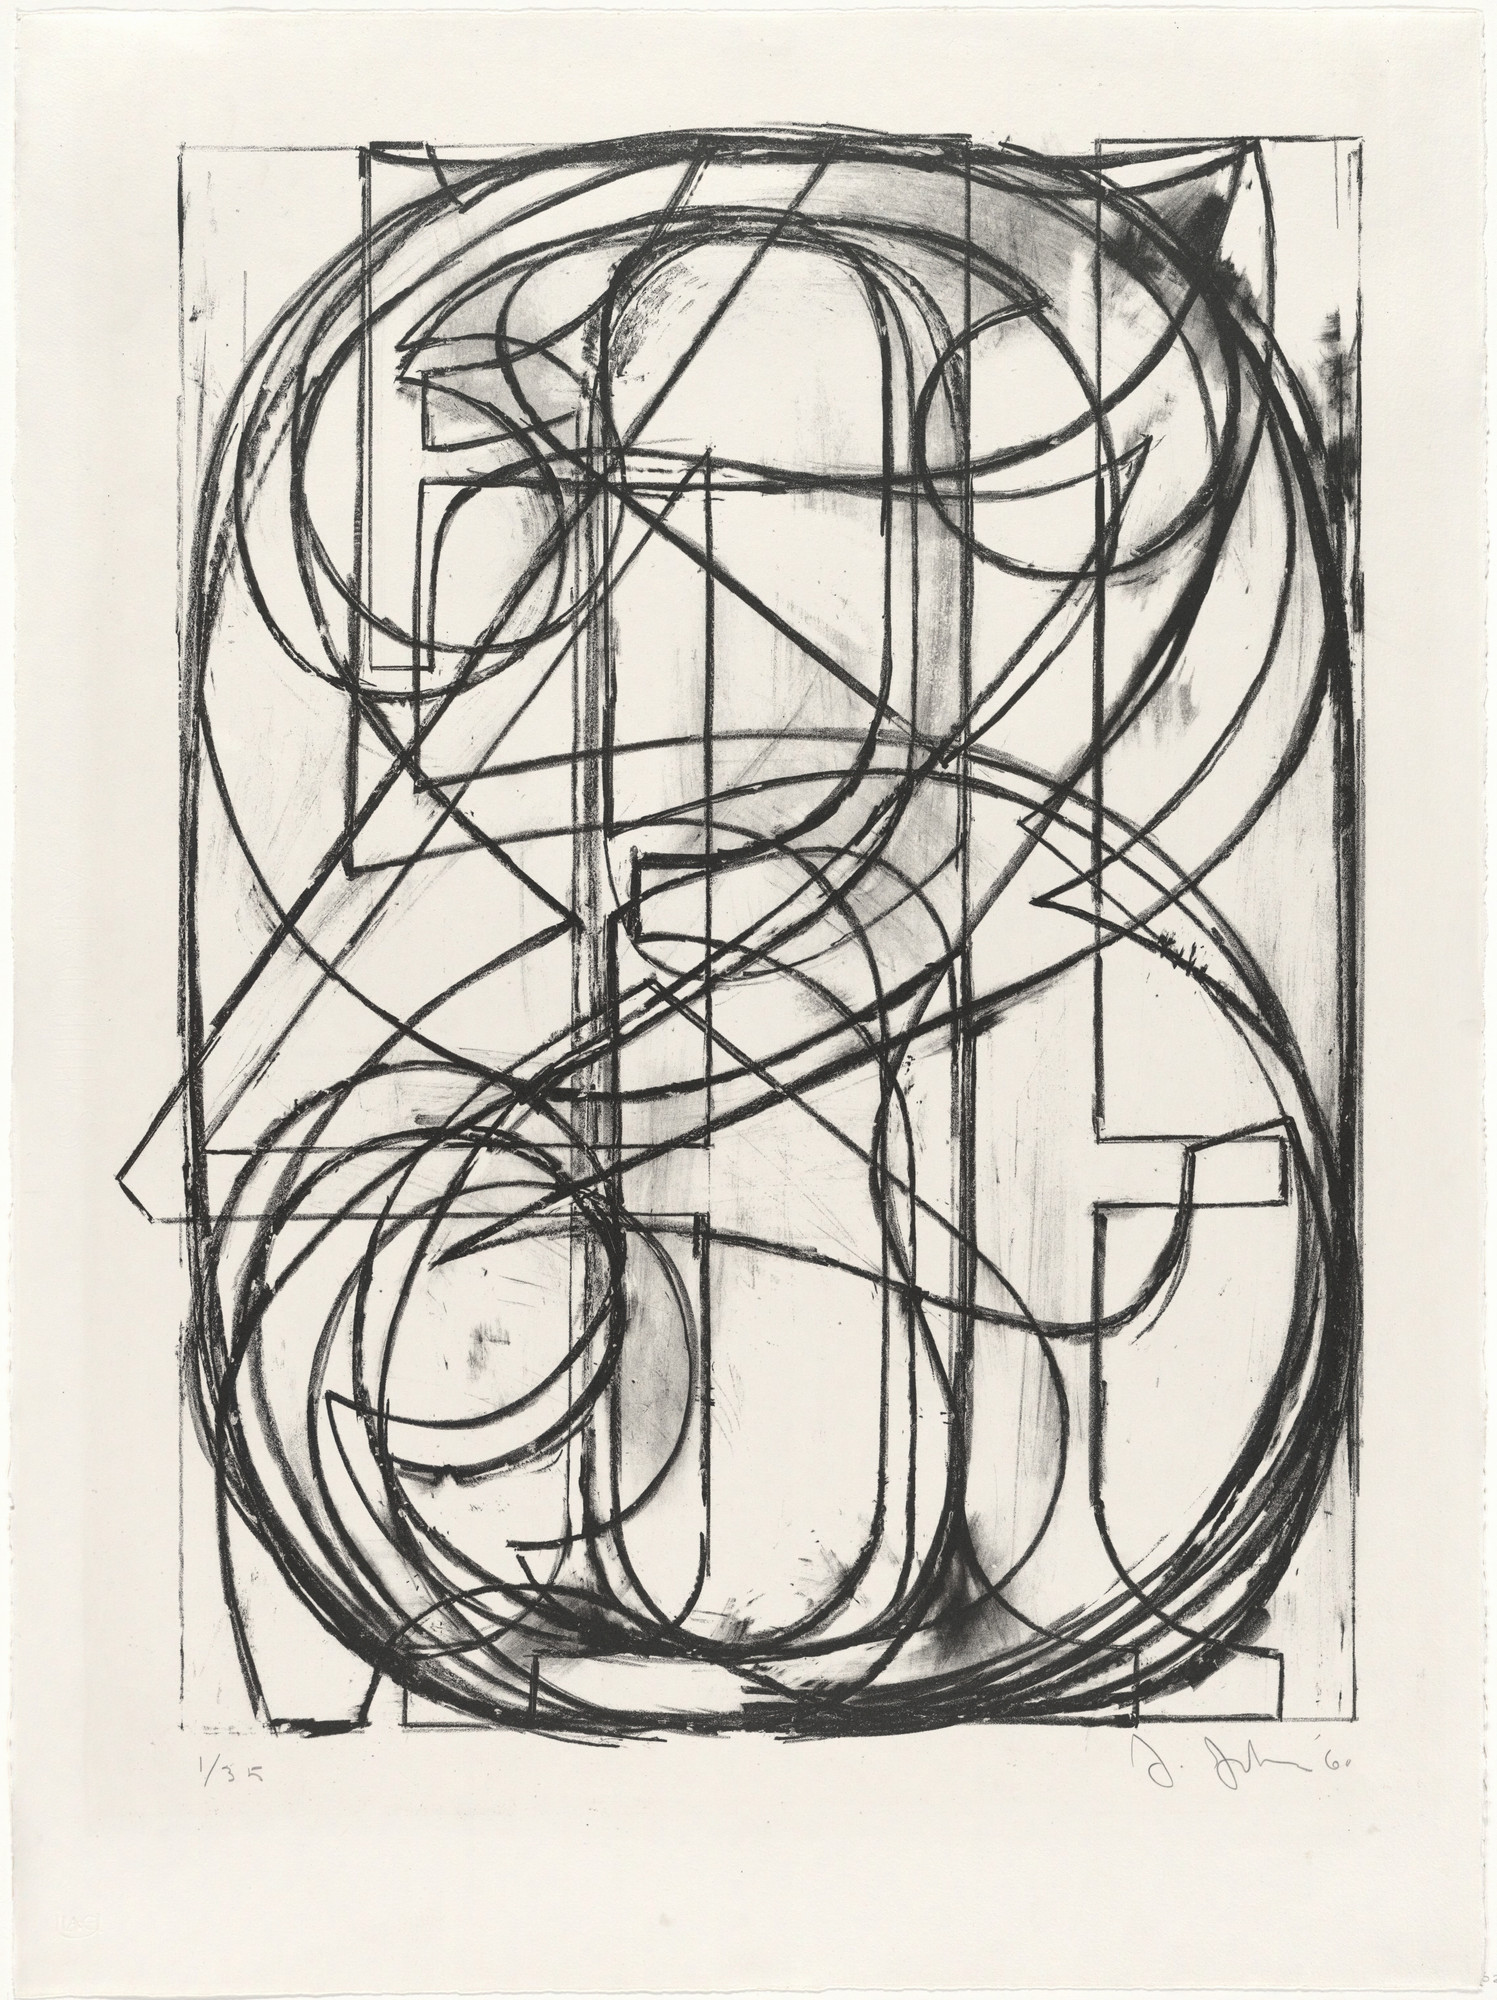 Jasper Johns. 0 through 9. 1960